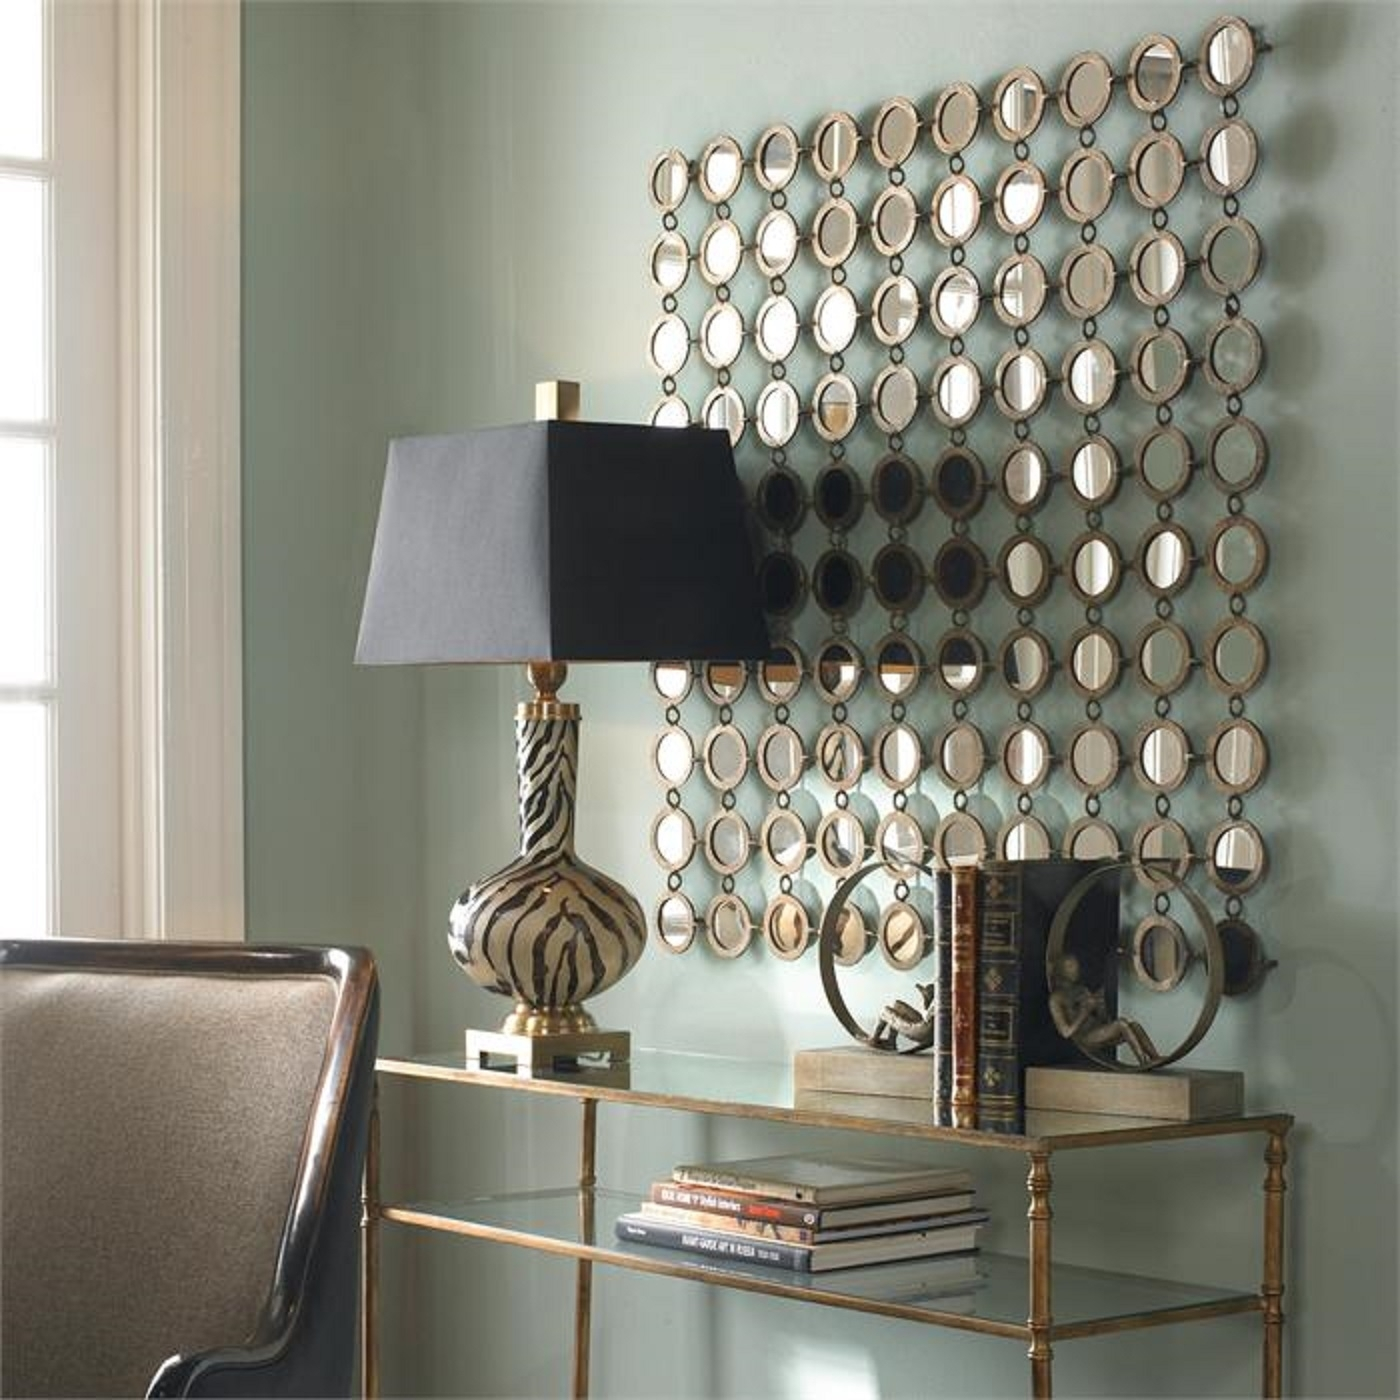 Elegant Mirrored Wall Art Exhibition Elegant Wall Decor – Prix Dalle With 2018 Mirrored Wall Art (View 8 of 20)